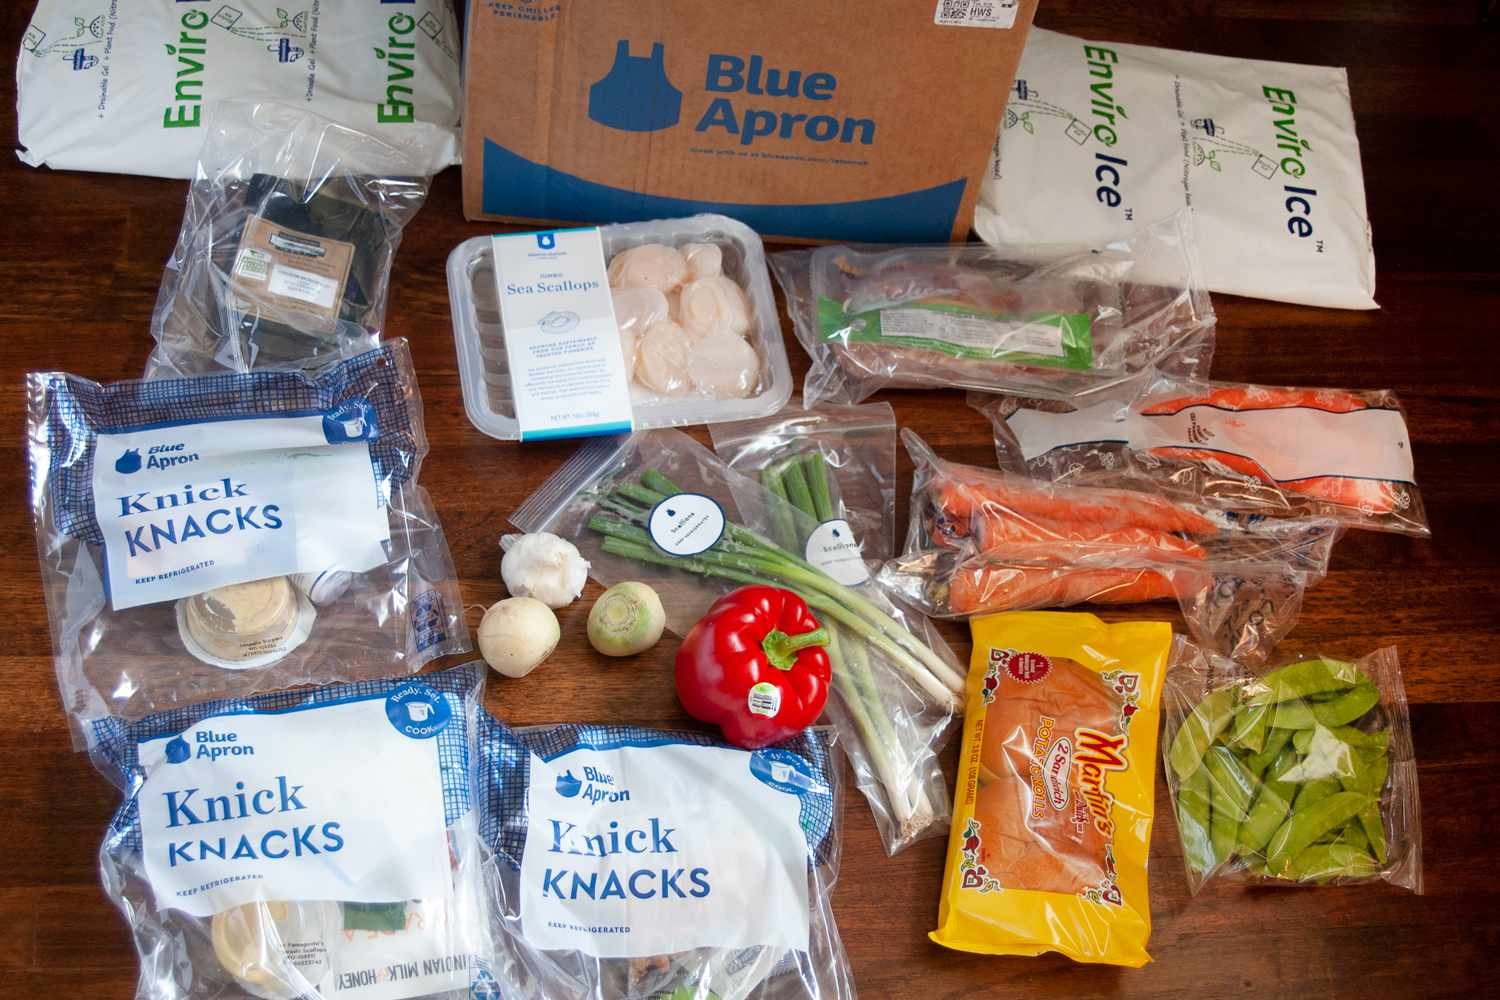 Blue Apron packaging